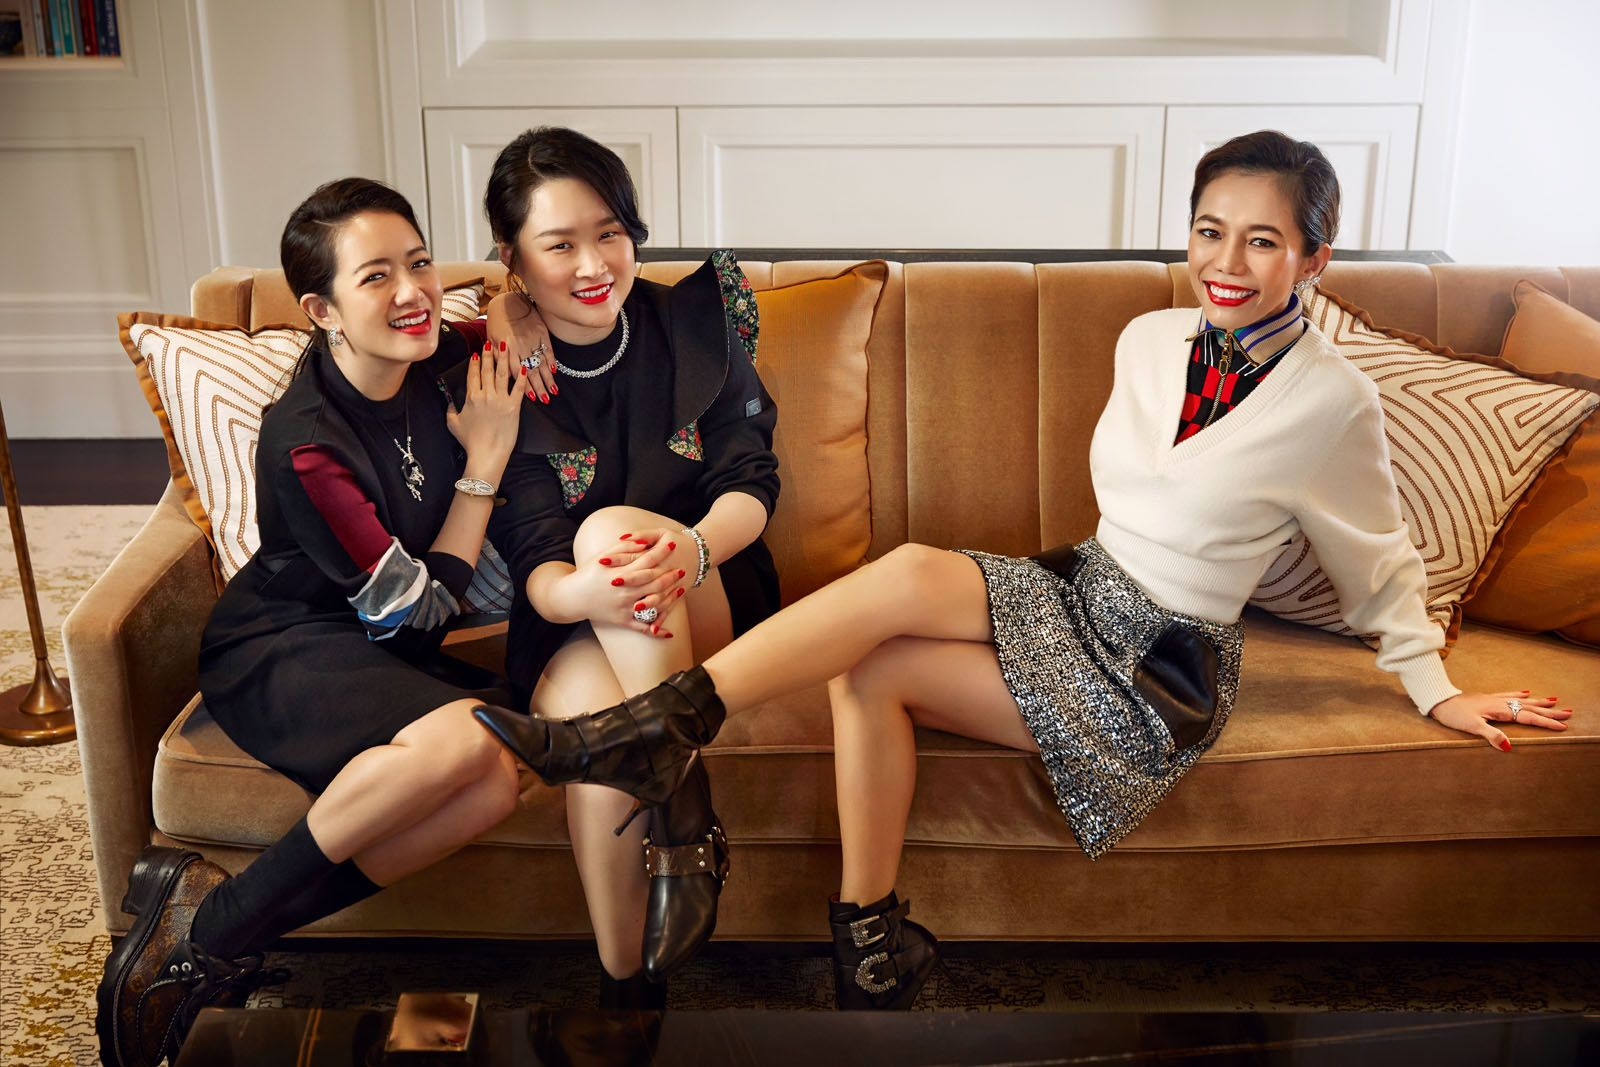 Lam Tze Tze Reveals The Challenges Of Working In A Family Business, And Her Desire To Continue The Legacy